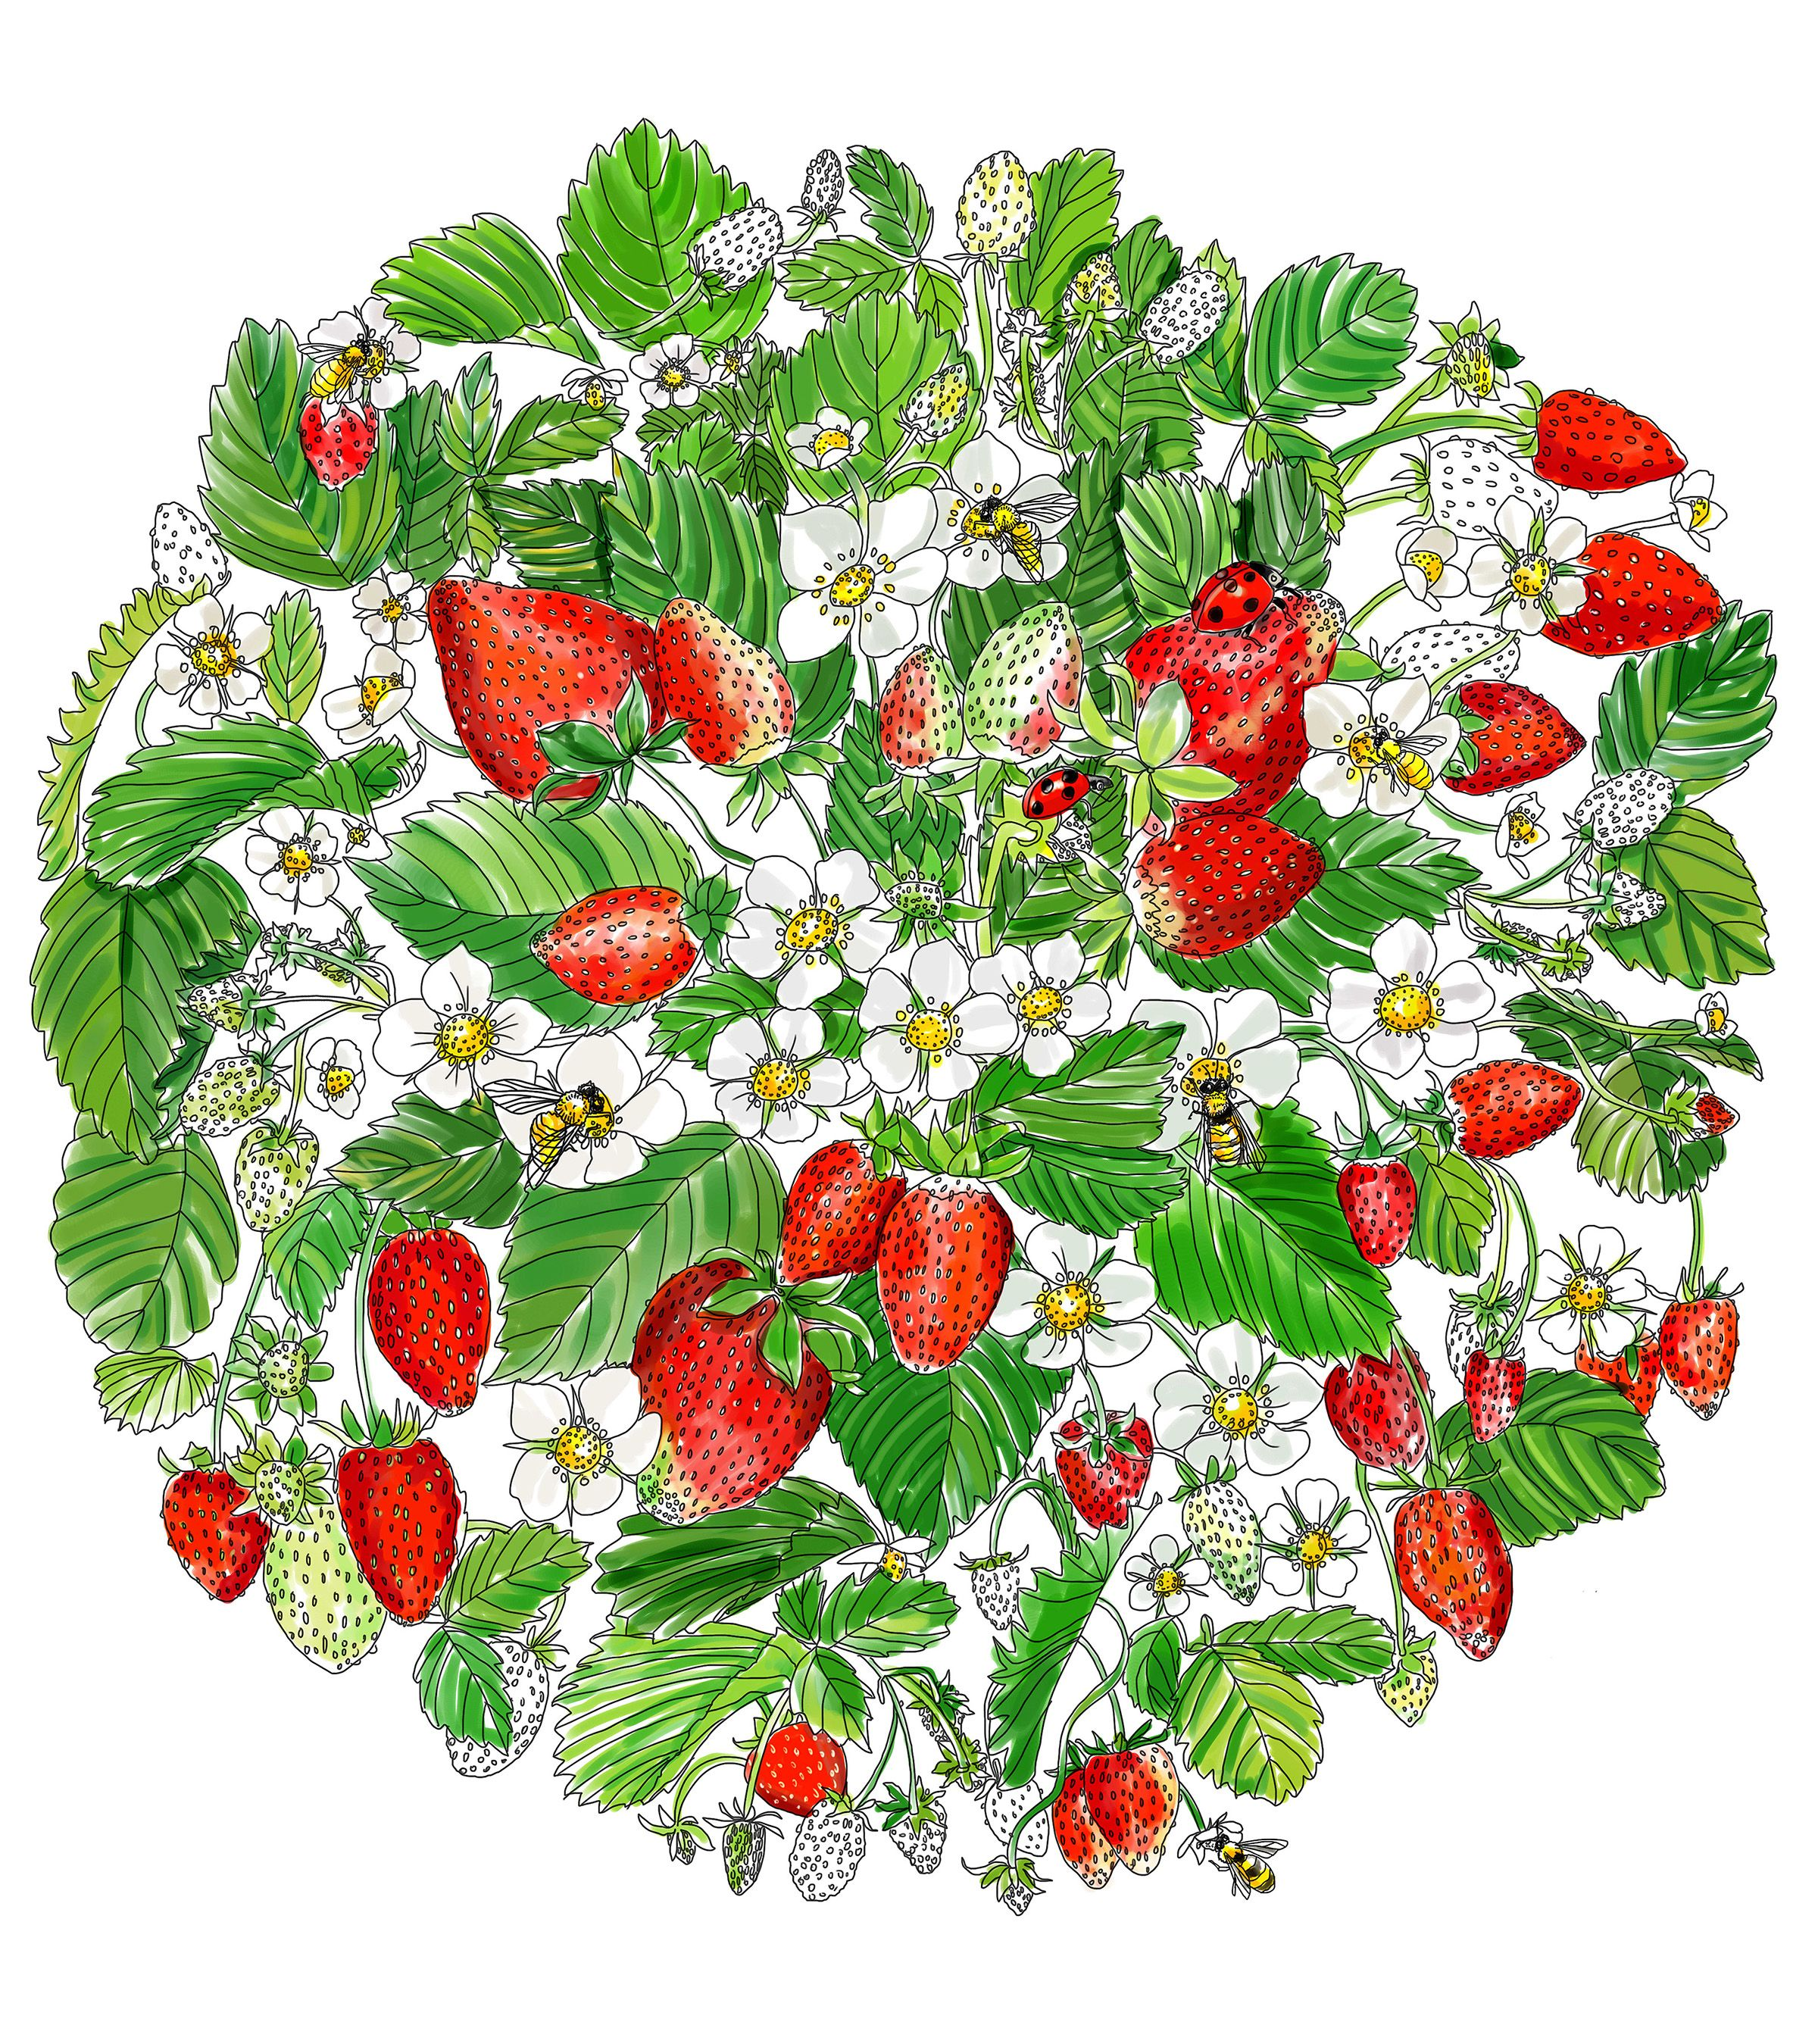 A Printable Adult Coloring Page for Strawberry Lovers | Adult coloring